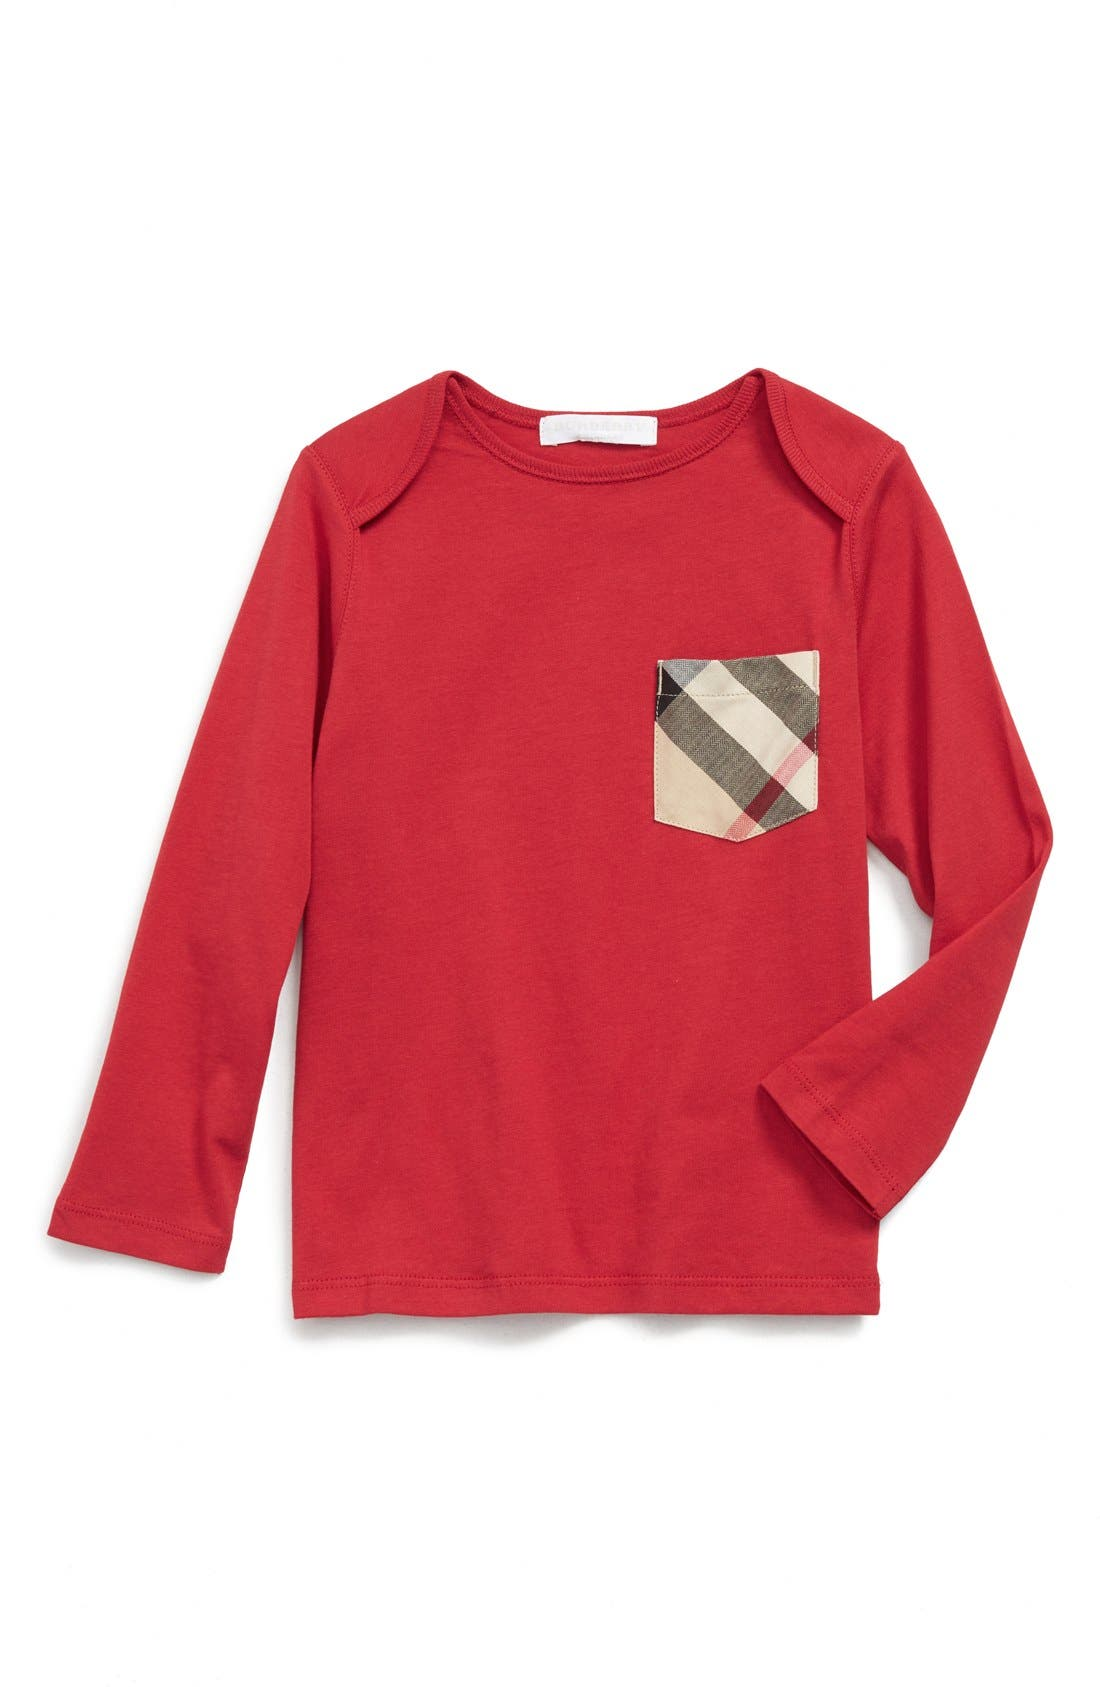 Burberry 'Callum' Check Print Chest Pocket T-Shirt (Baby Boys)